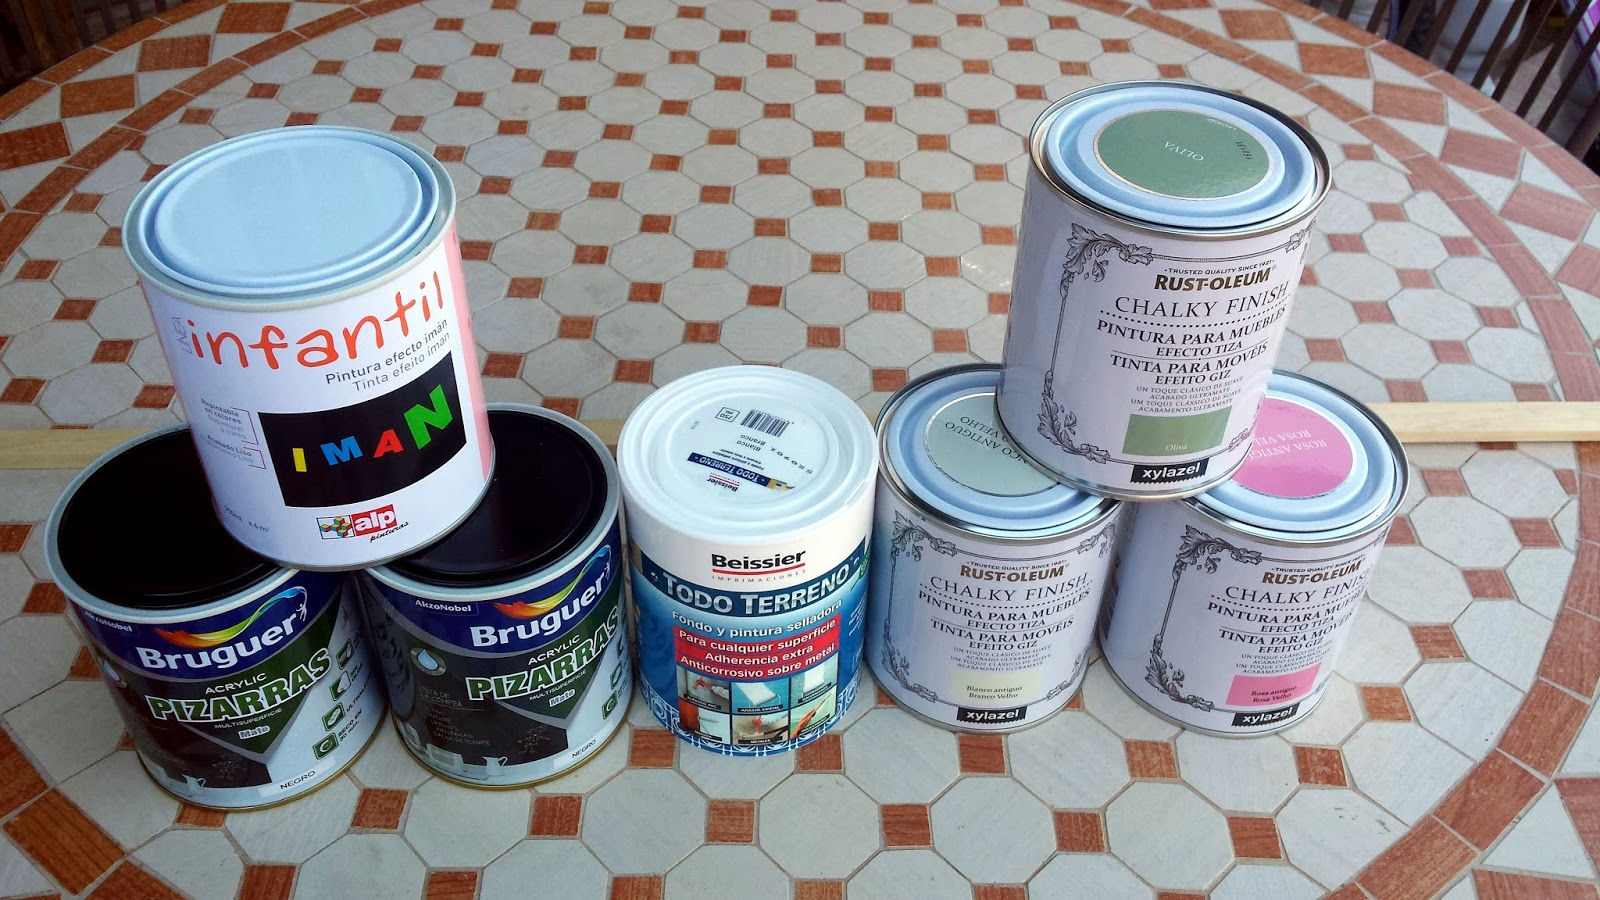 Pinturas Ecologicas Leroy Merlin Chalk Paint Spray Leroy Merlin Carolesase Carolesase